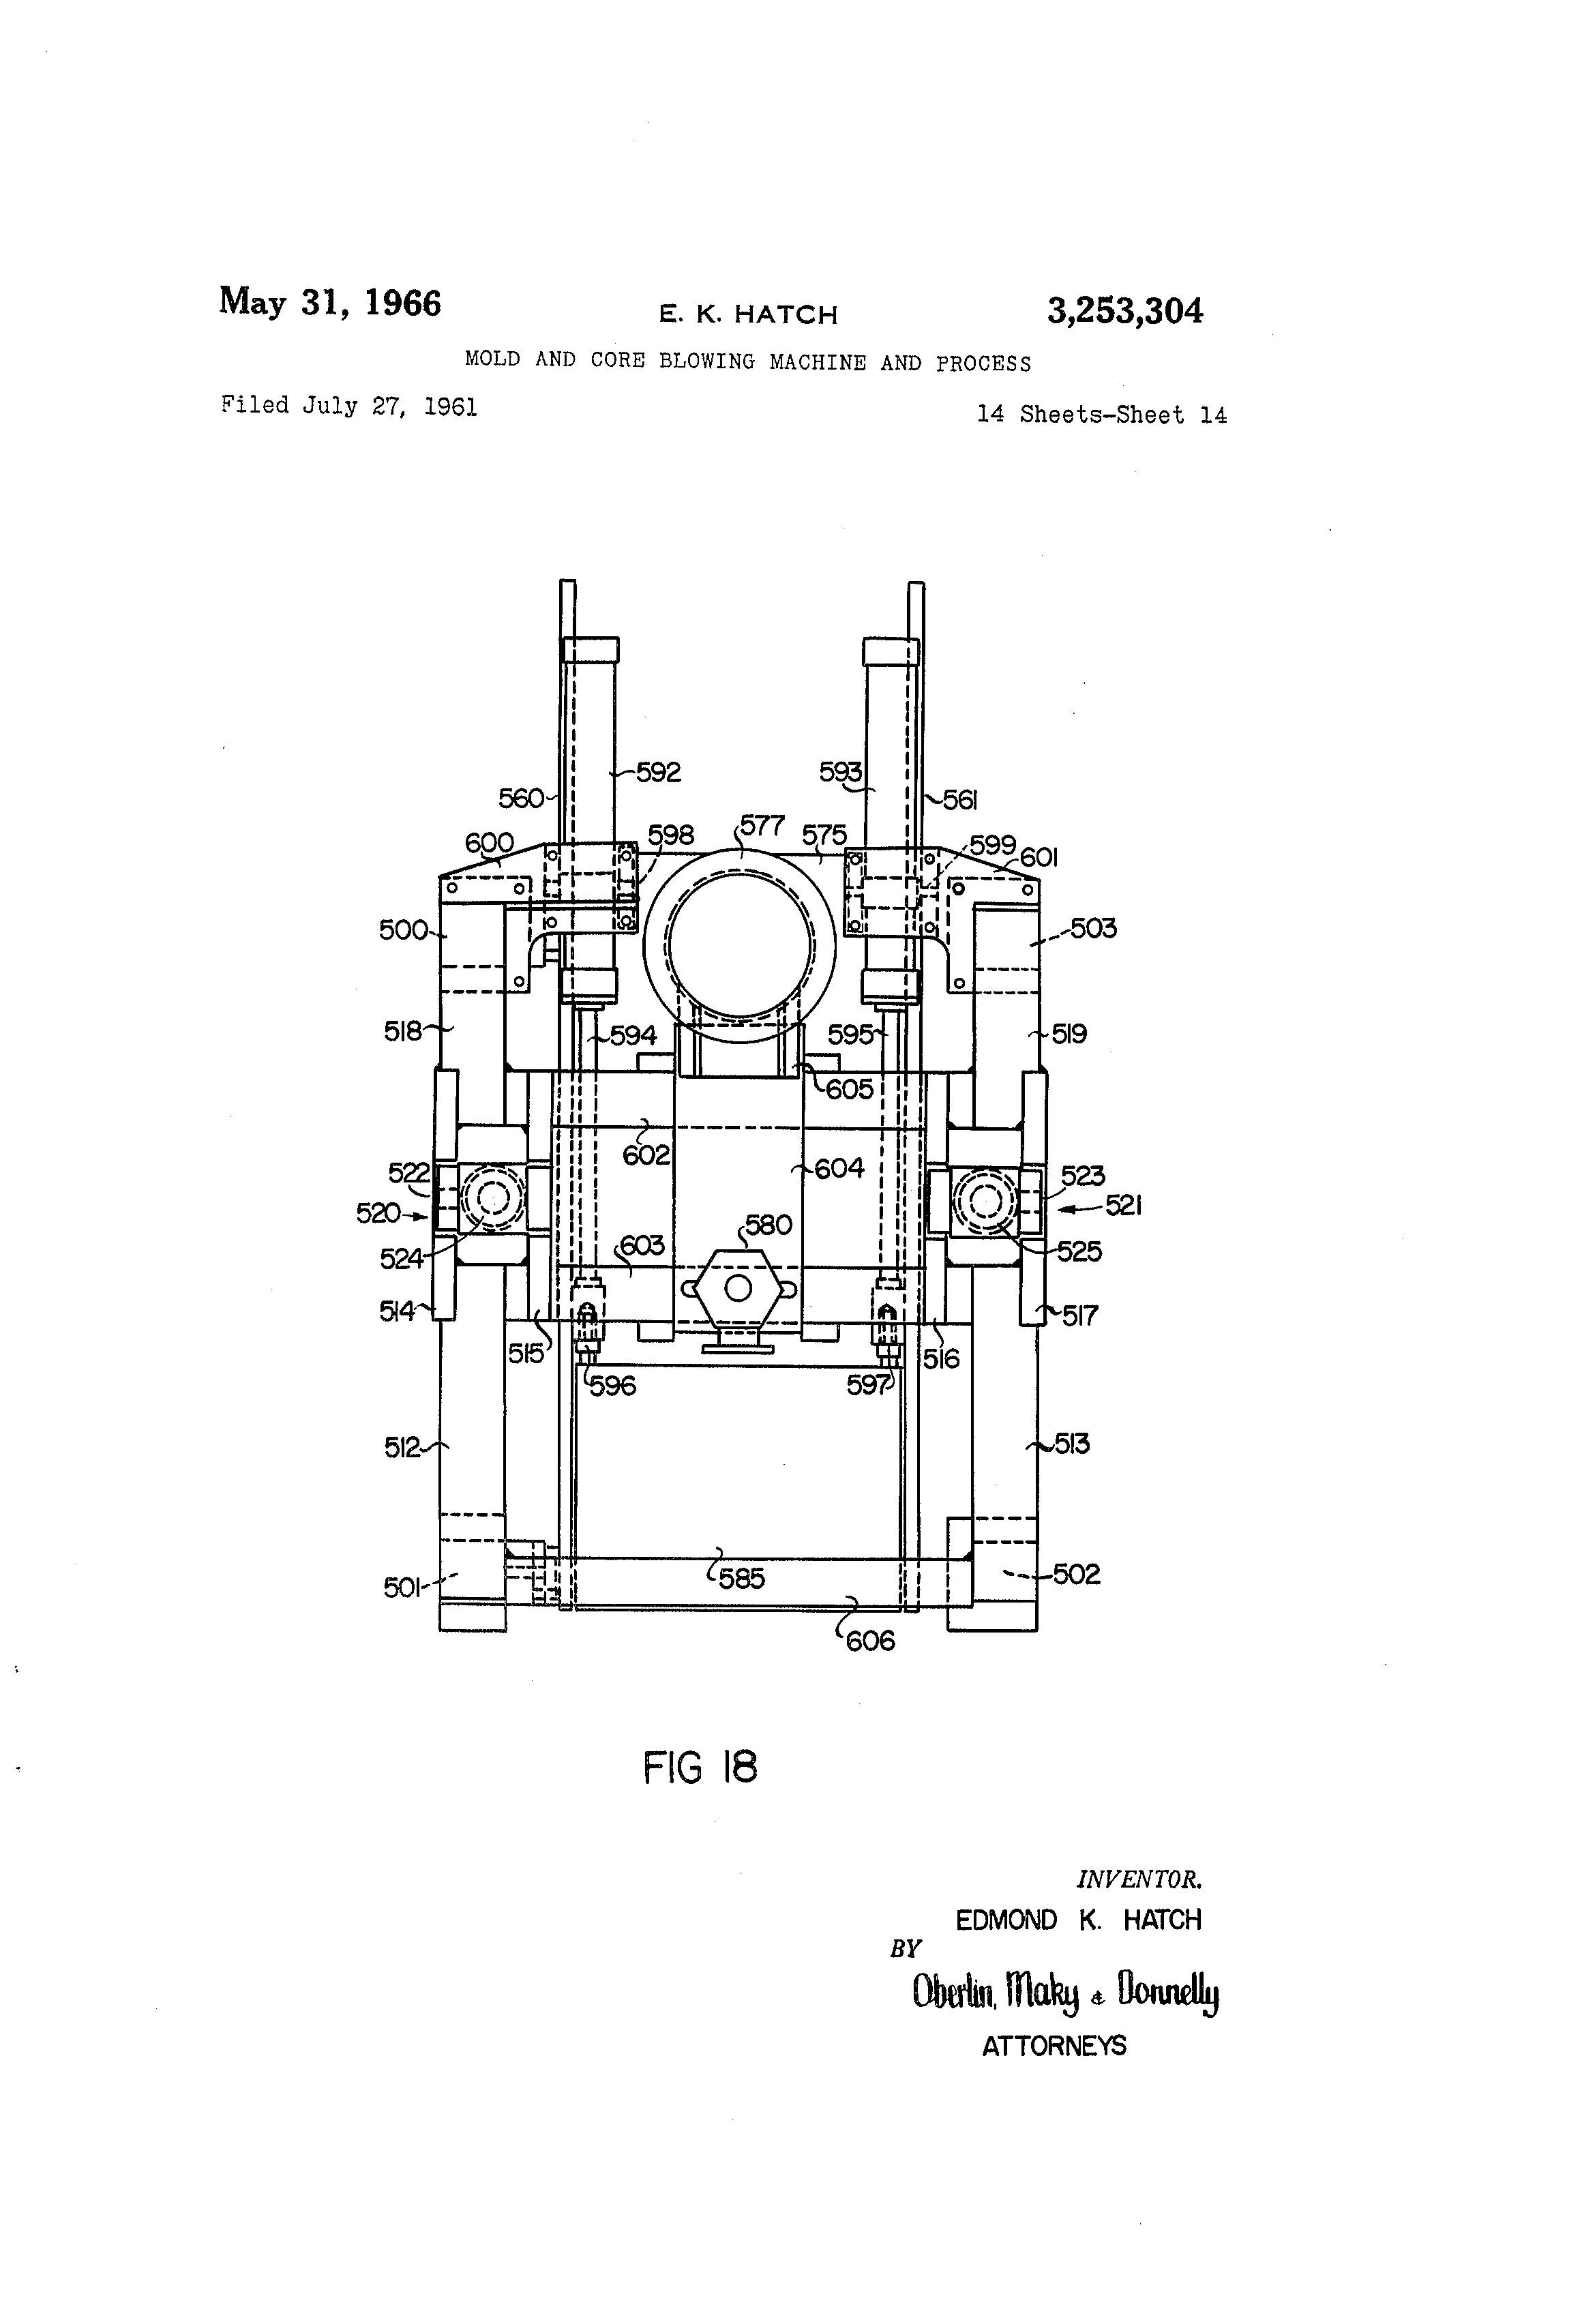 US3253304 13 patent us3253304 mold and core blowing machine and process  at bayanpartner.co